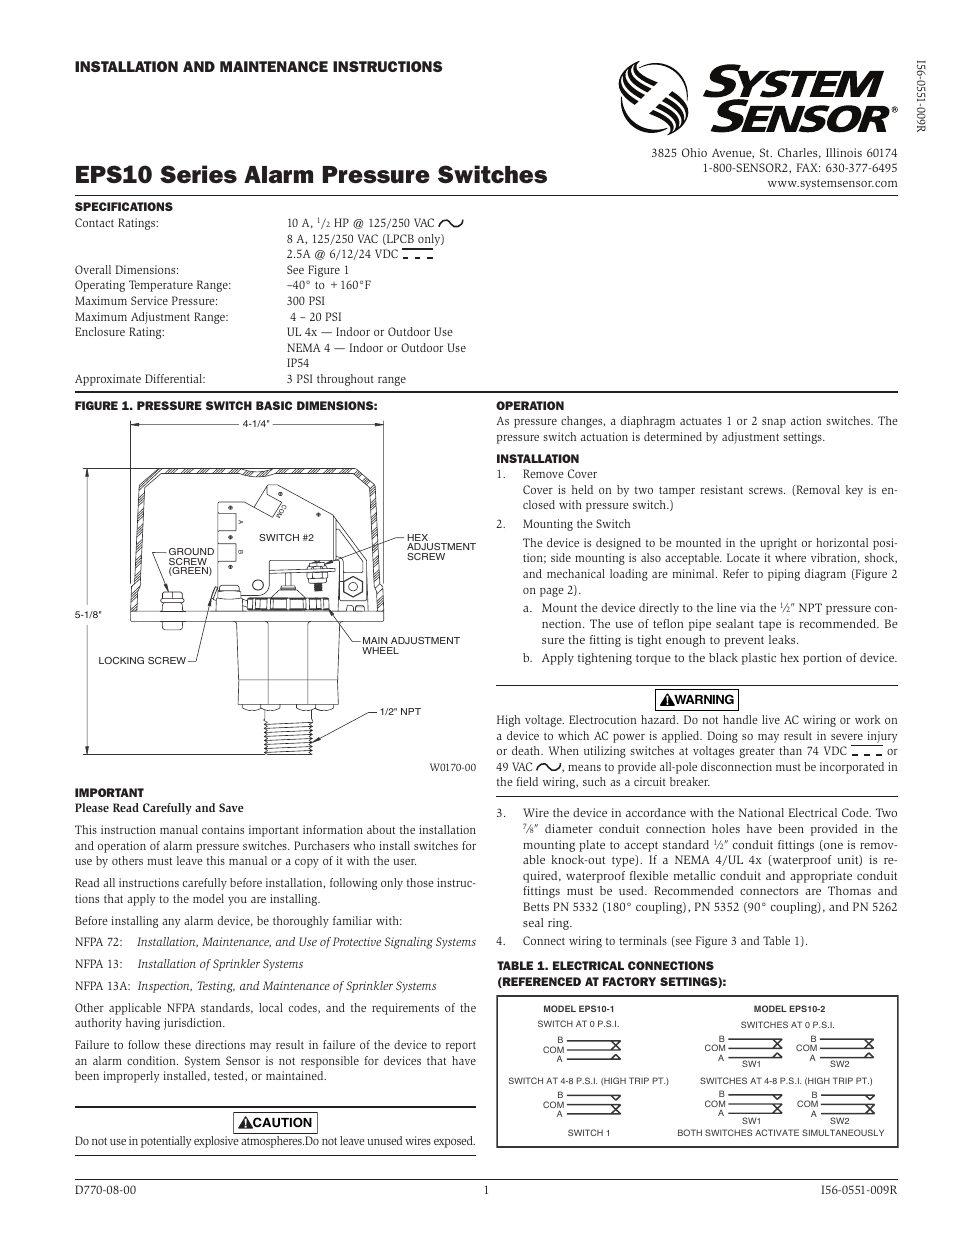 system sensor eps10 1 and eps10 2 page1 system sensor eps10 1 and eps10 2 user manual 2 pages 5R55E Transmission Wiring Diagram at bakdesigns.co